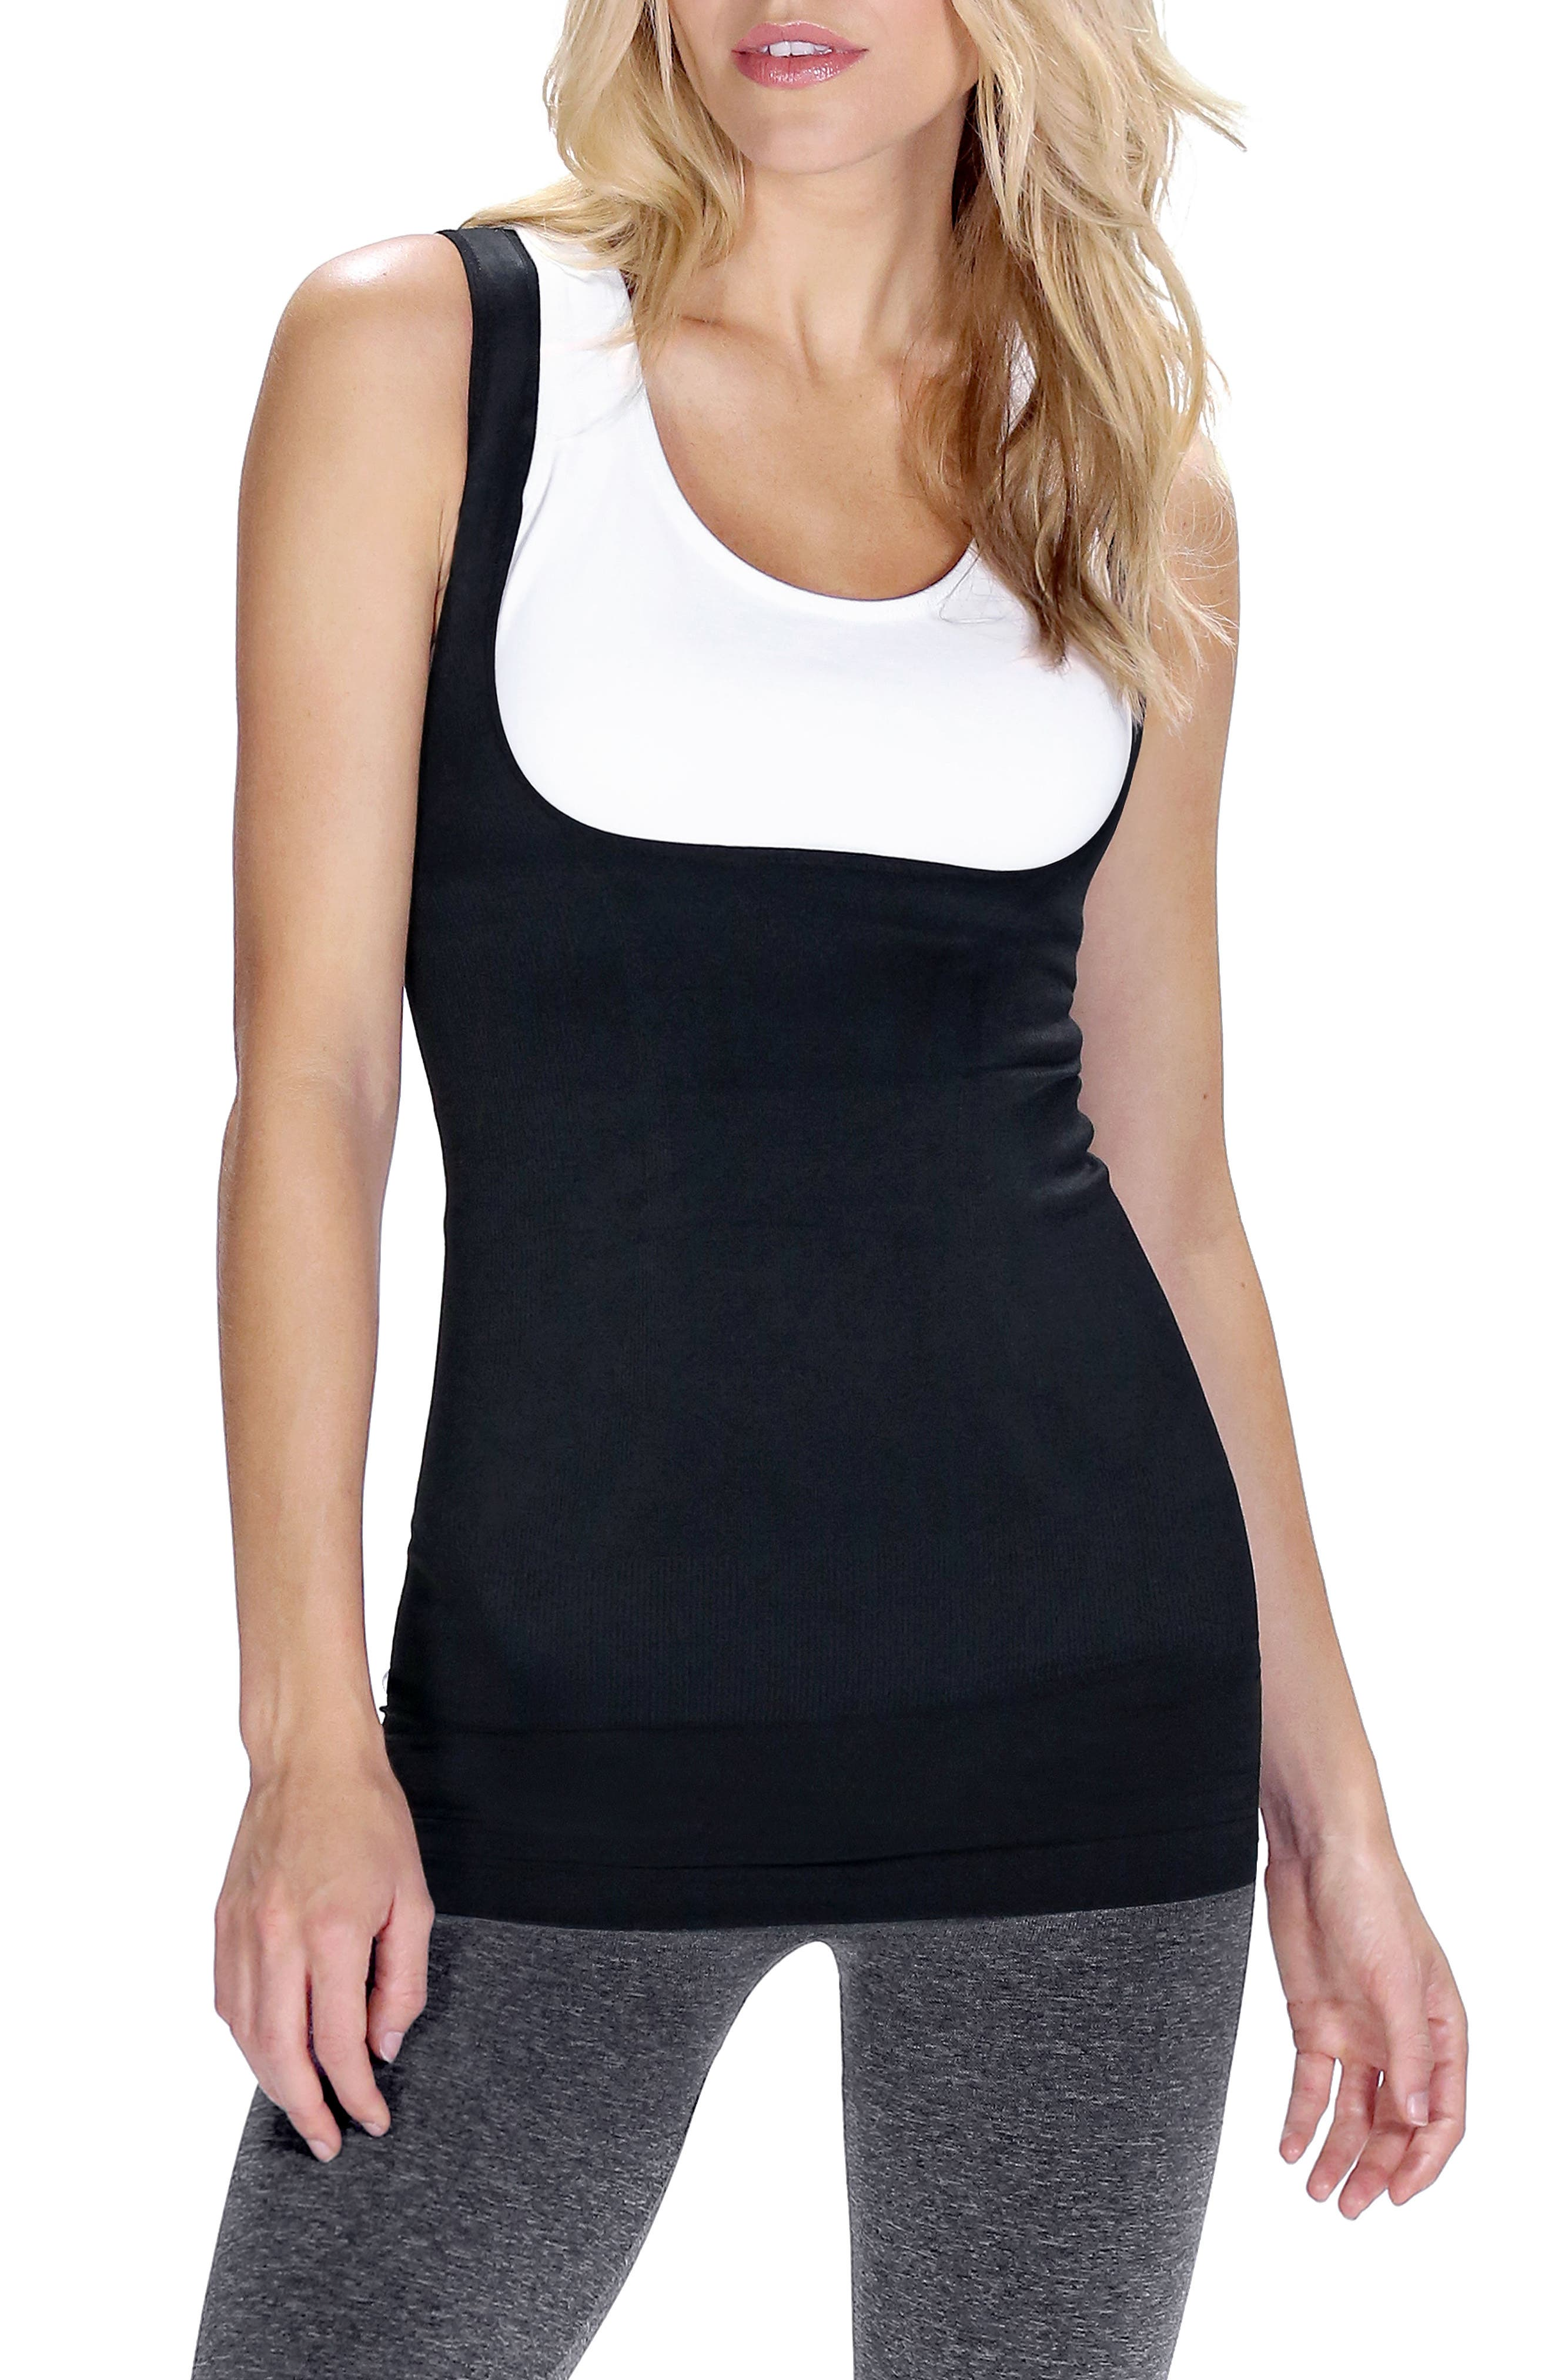 Everyday<sup>™</sup> Lift-Up Access Postpartum + Nursing Support Tank,                         Main,                         color, Deepest Black